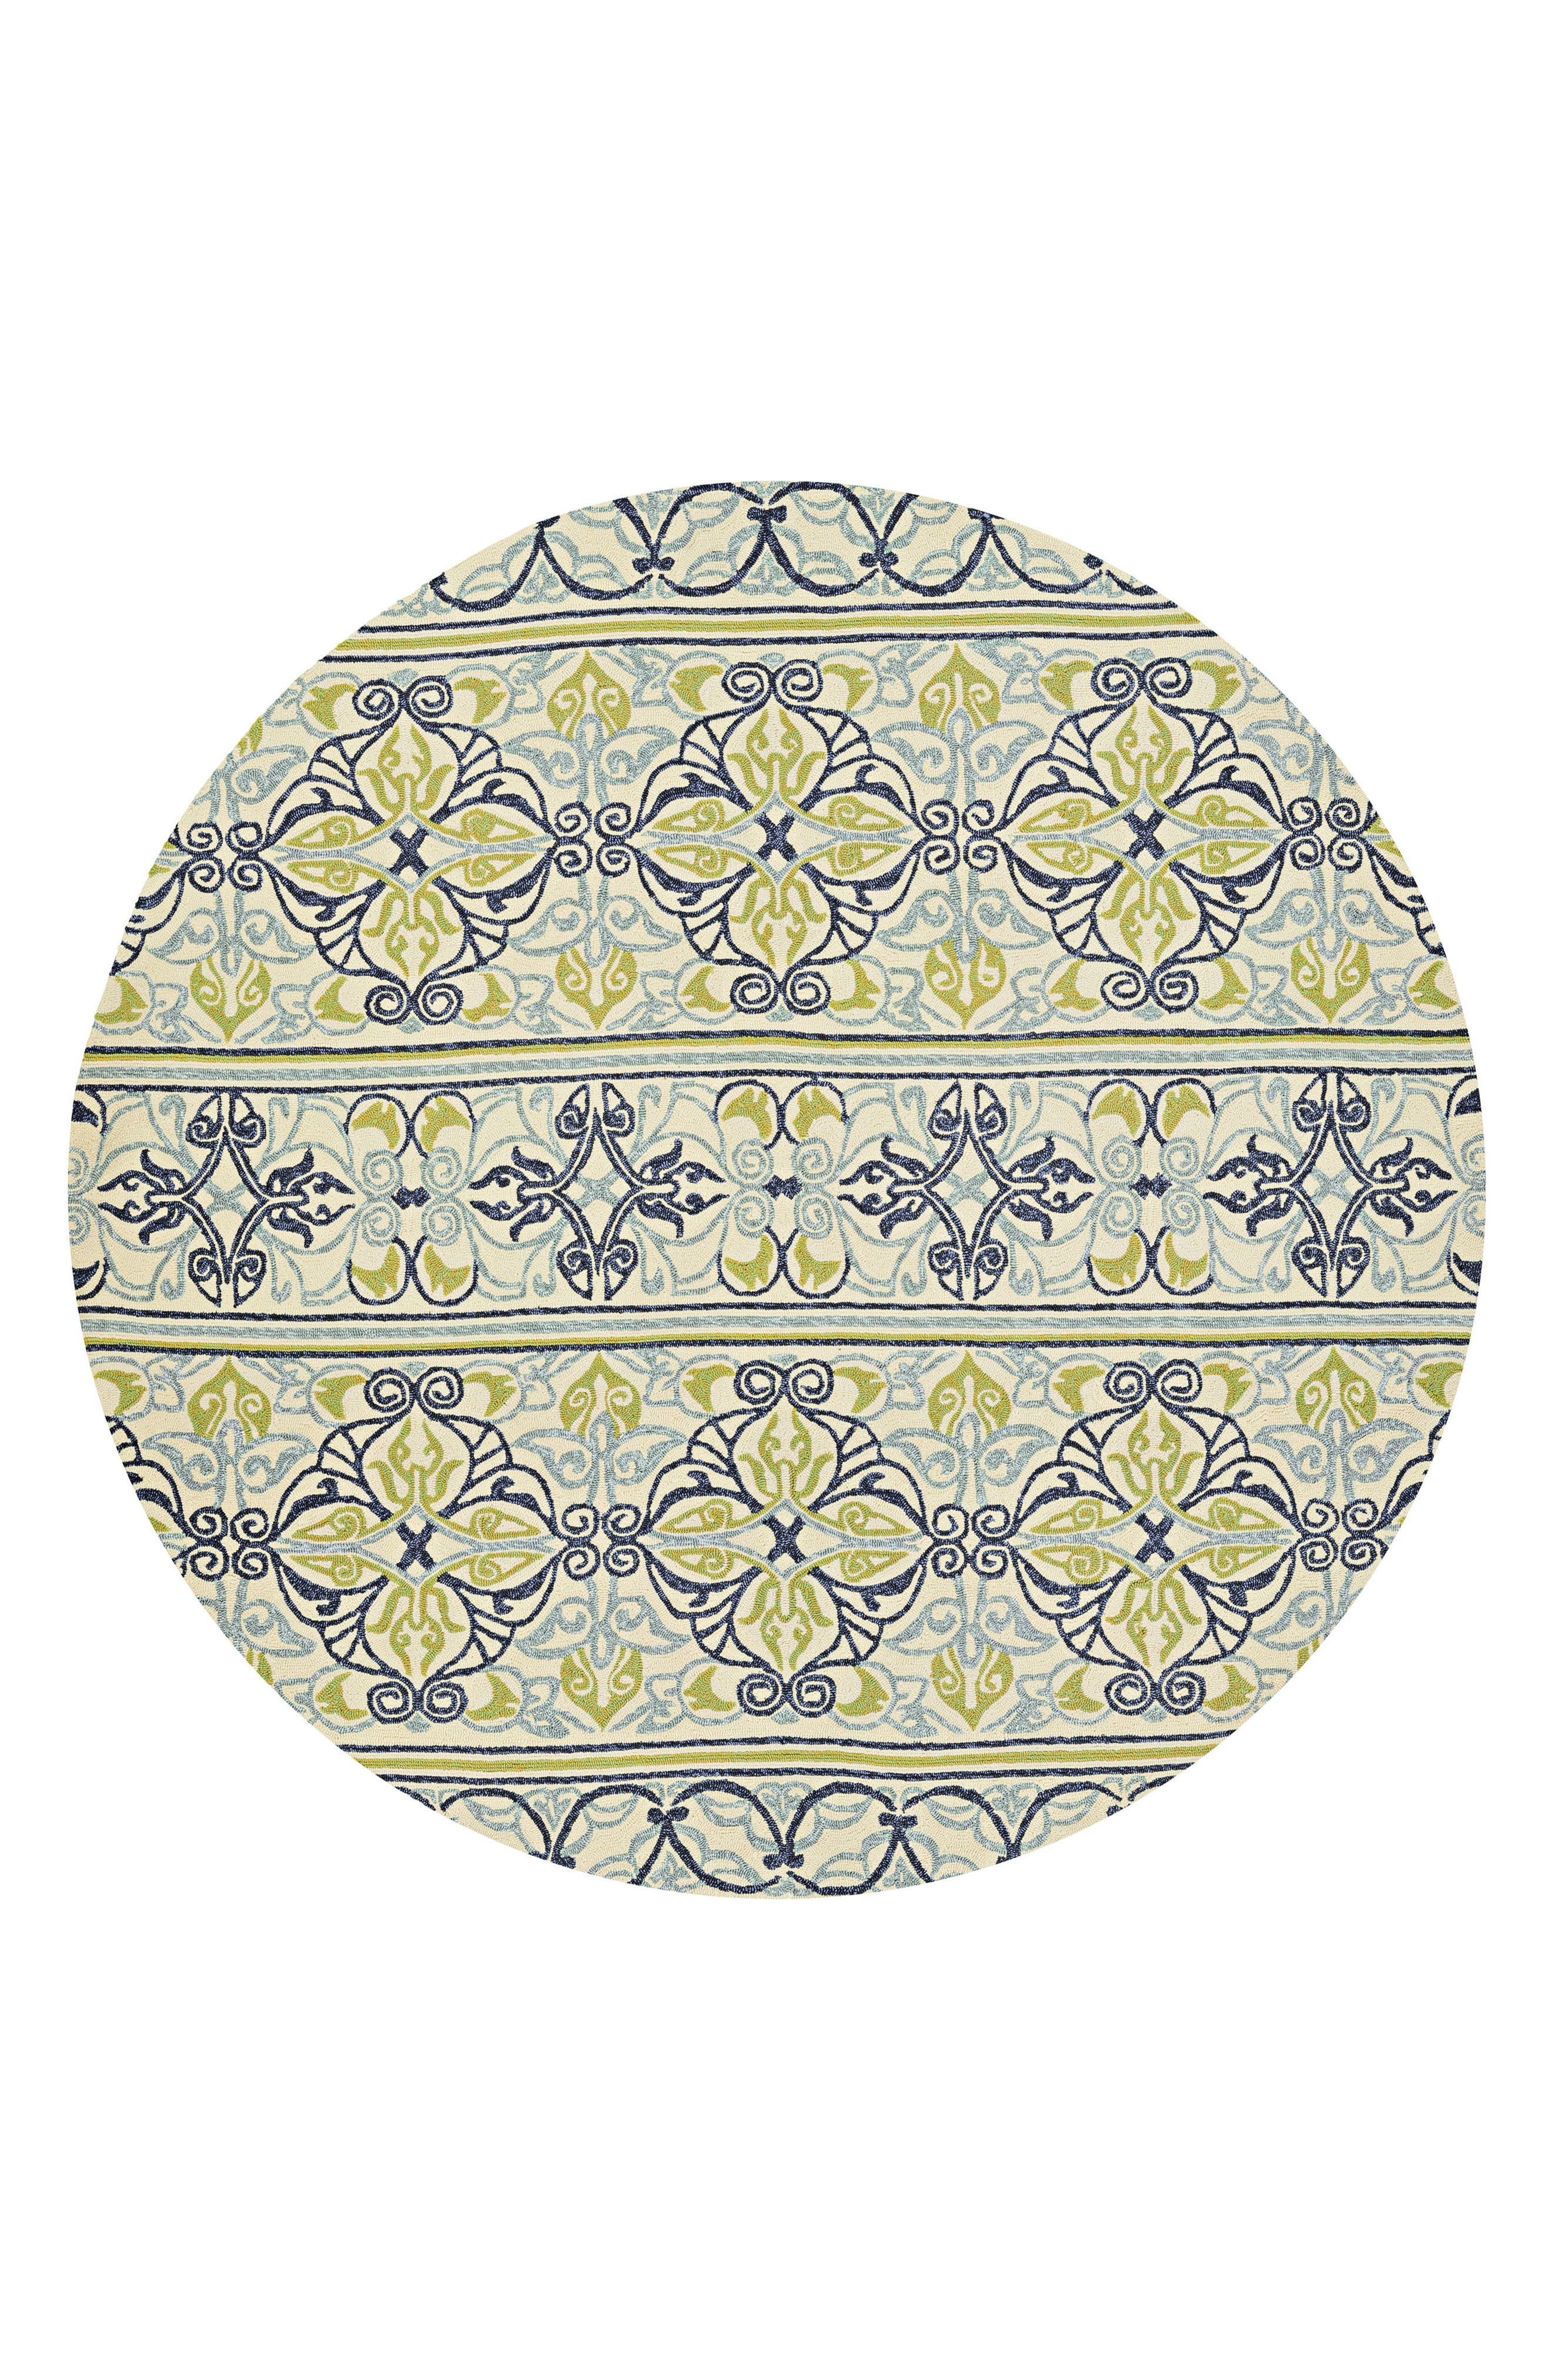 Pegasus Indoor/Outdoor Rug,                         Main,                         color, Ivory/ Navy/ Lime